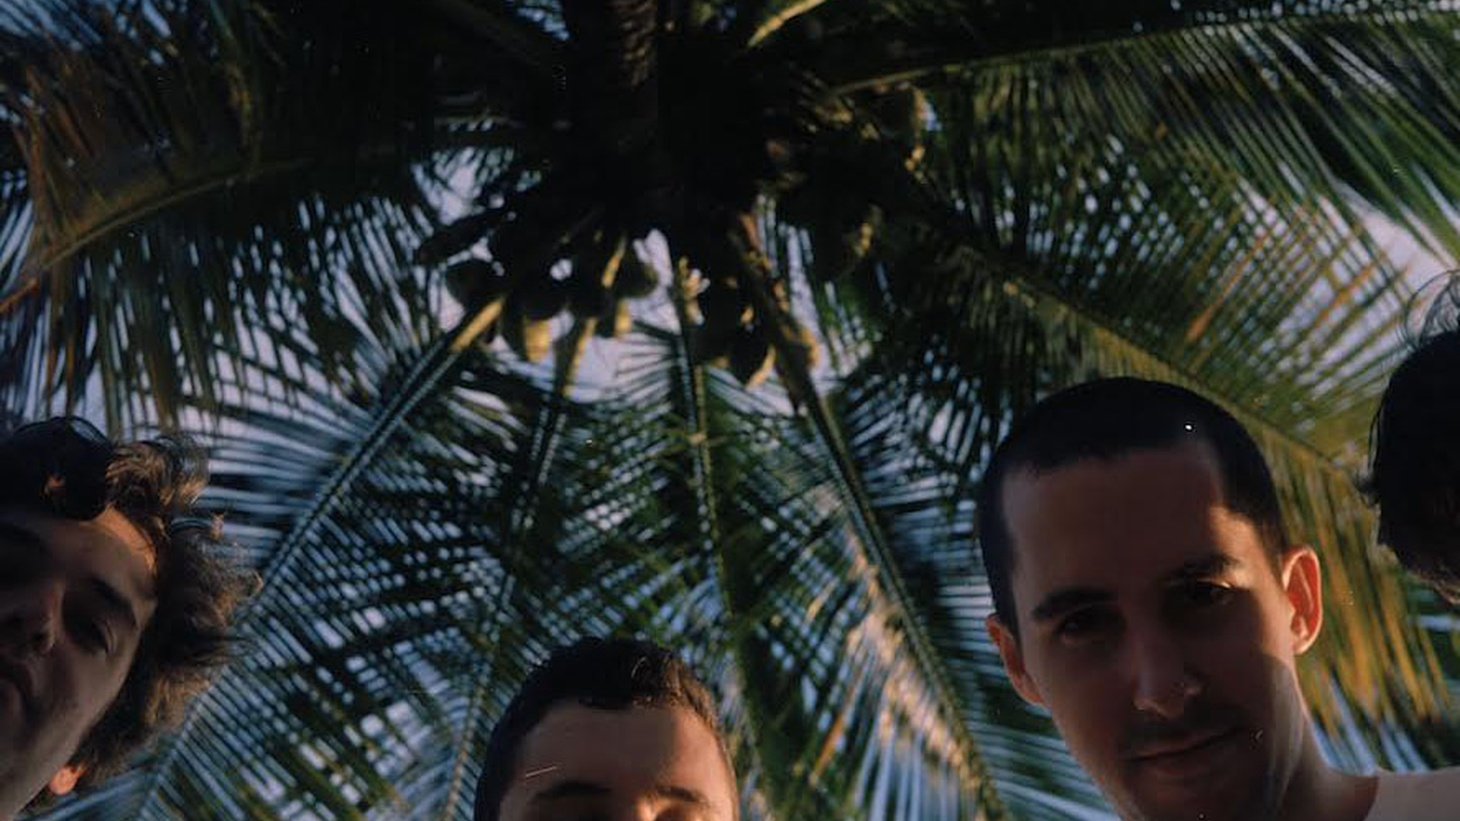 """It's been a busy year for BADBADNOTGOOD, with a worldwide tour and producing tracks for Kendrick Lamar (among other artists). """"Tried"""" is a new song featuring the sounds of one of our favorite Swedish outfits, Little Dragon."""